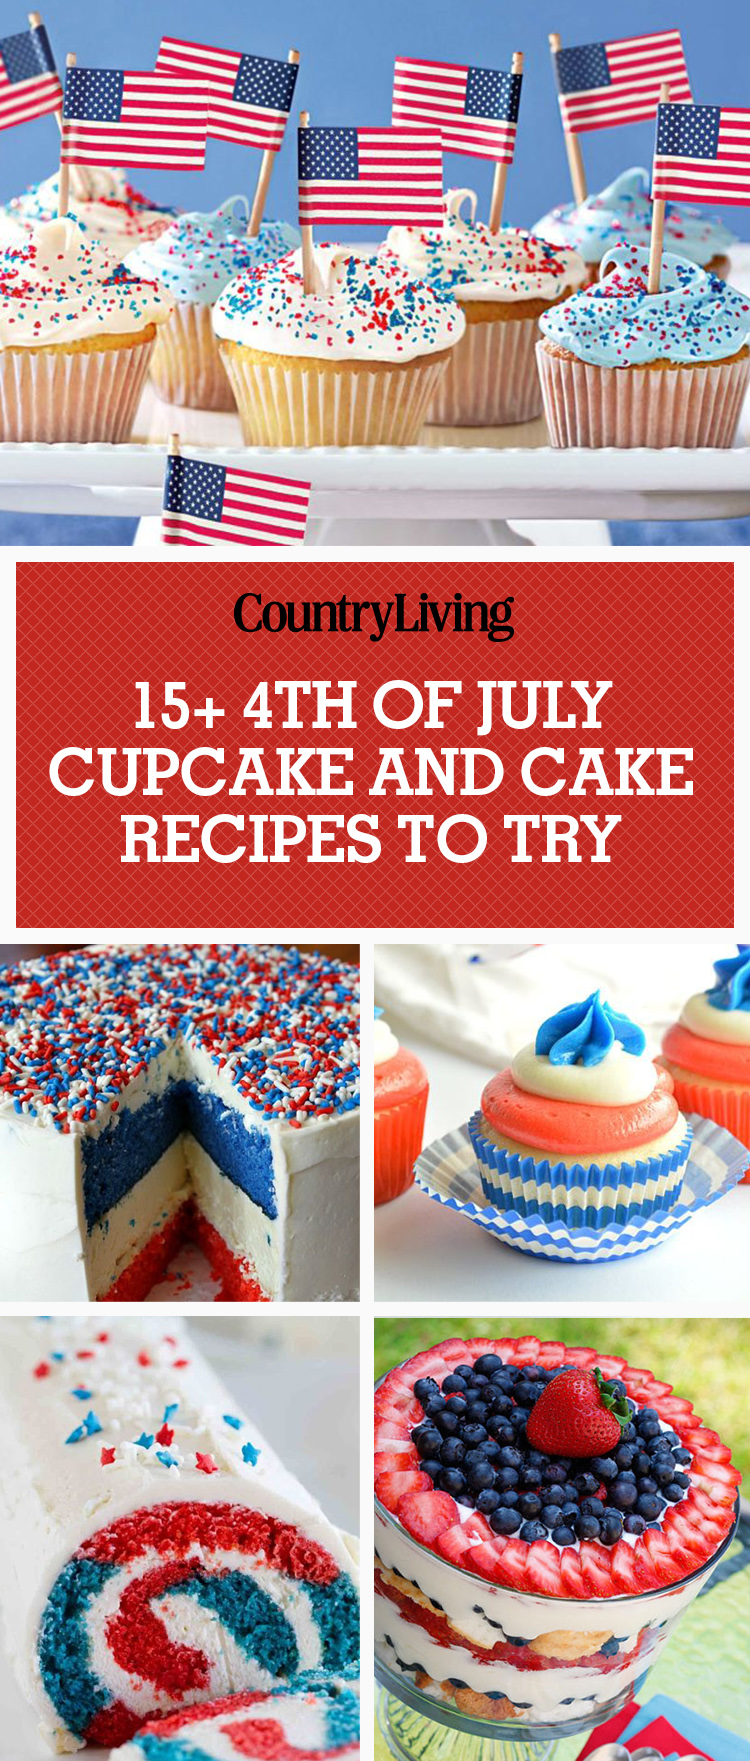 Fourth of july easy cake recipes